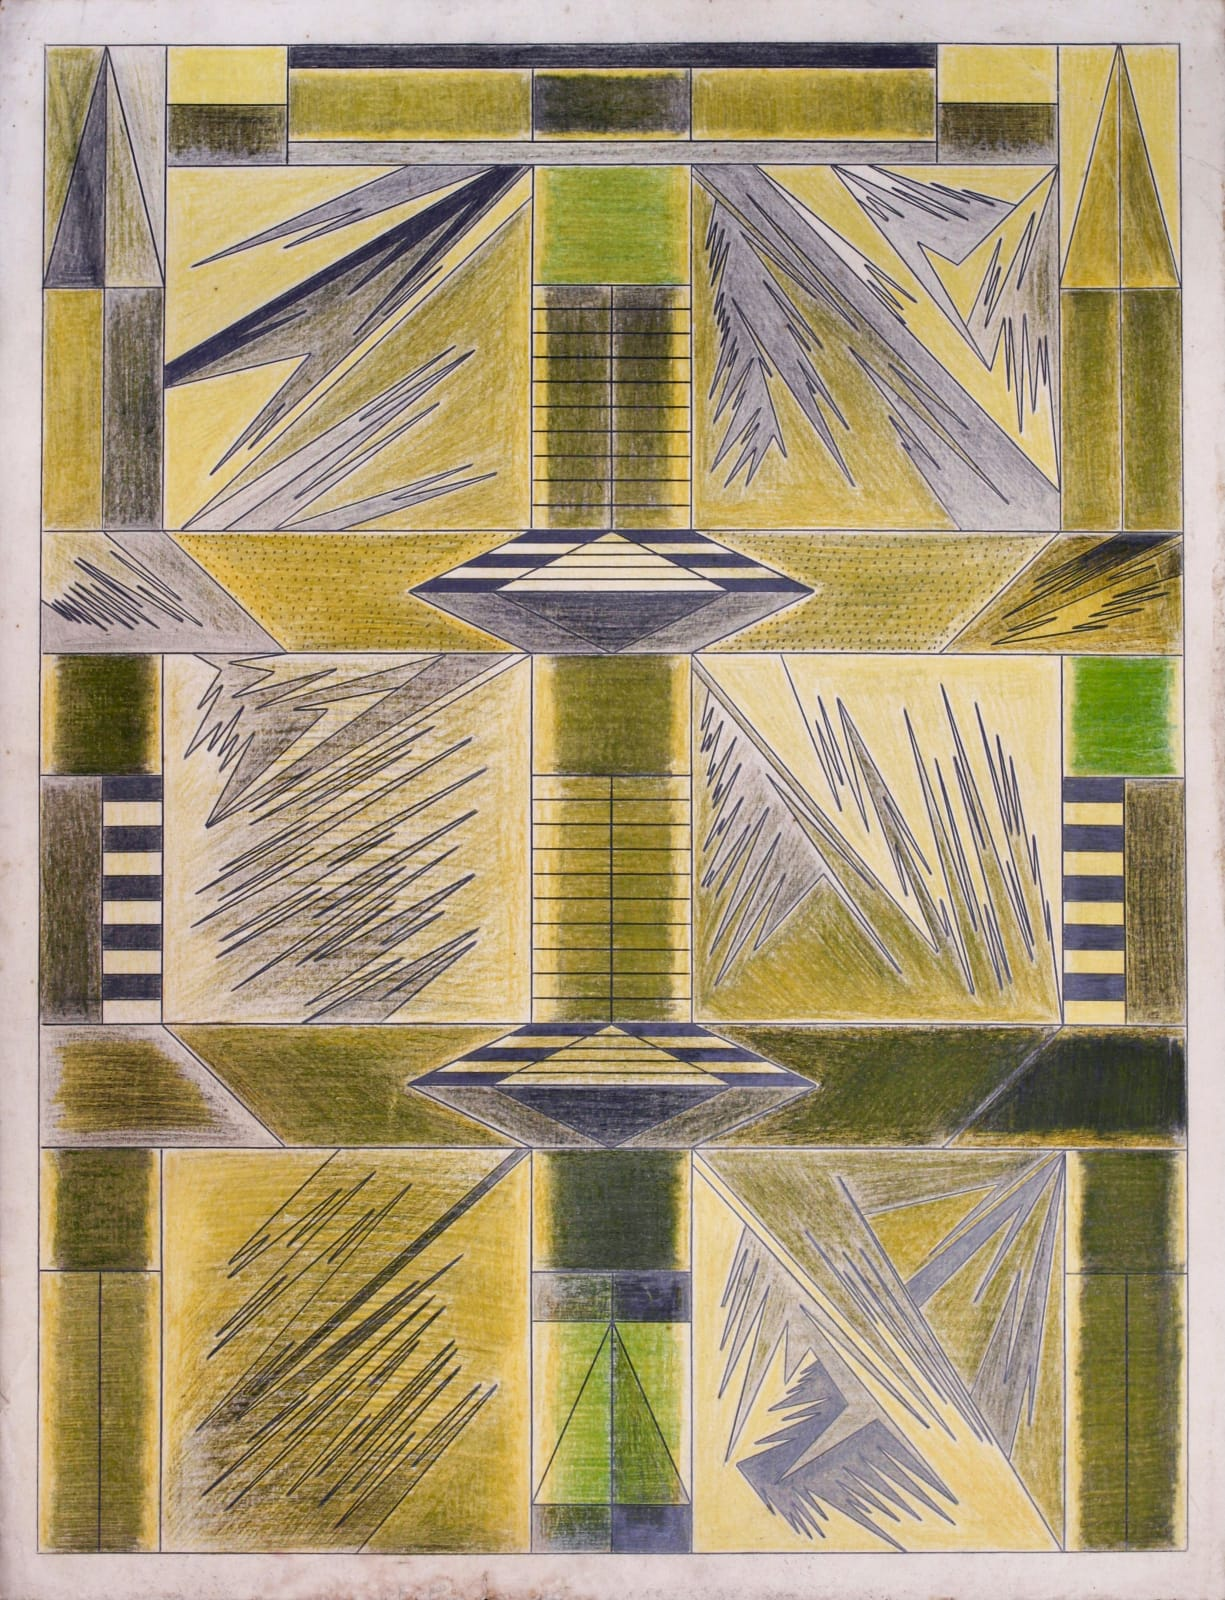 Untitled, ca. 1930 - 55 Colored pencil and graphite on paper 21 x 17 1/2 in. 53.3 x 44.5 cm. (DG 54)